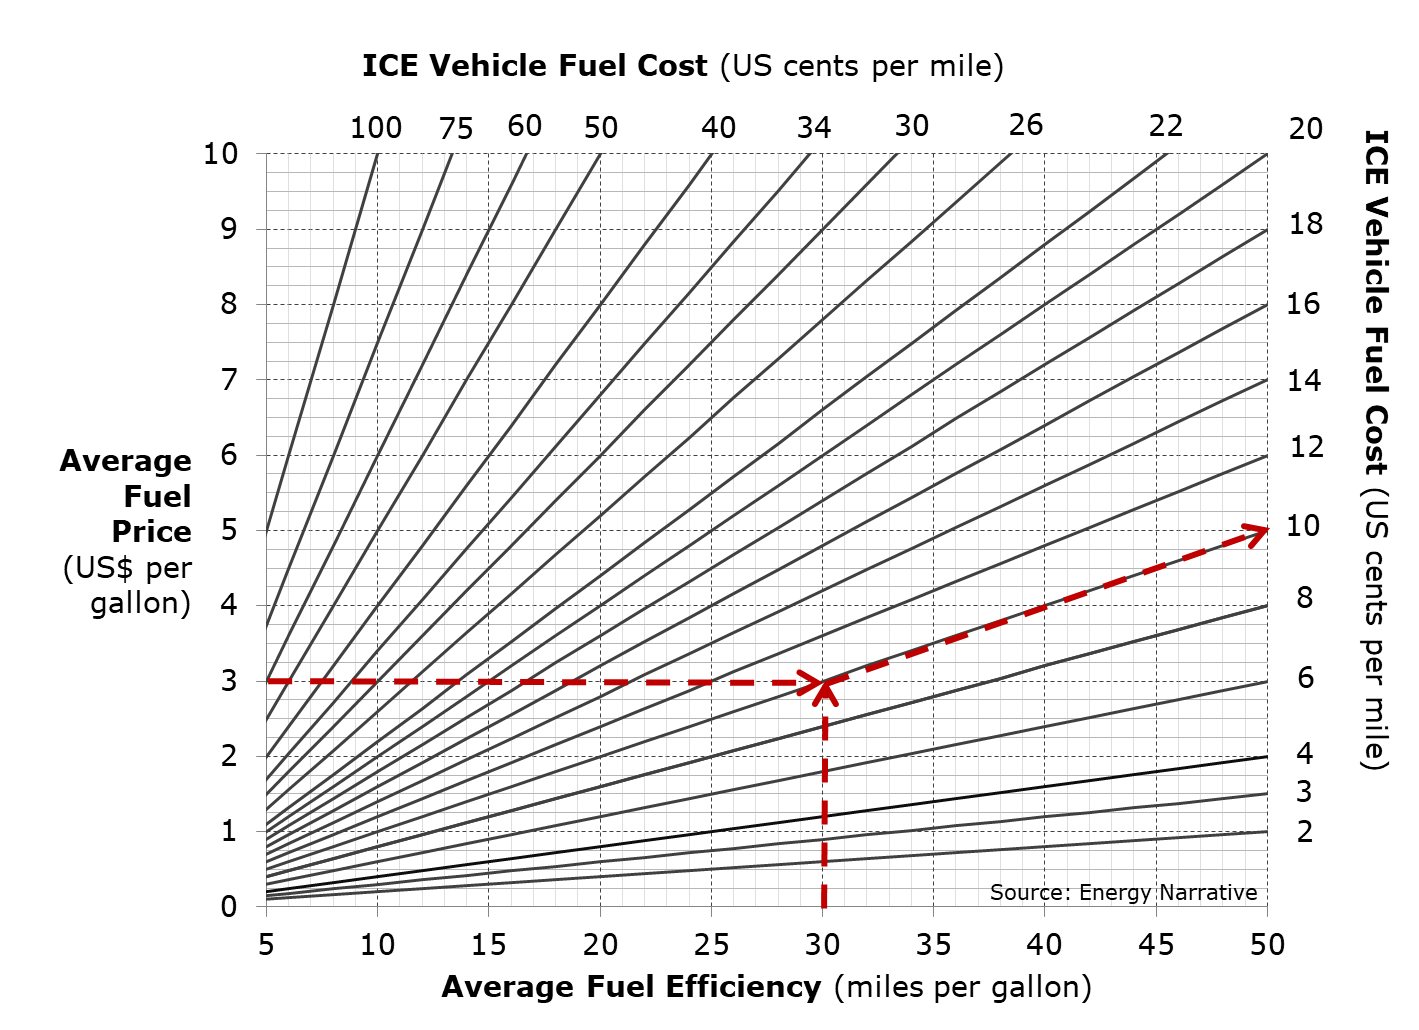 A hypothetical example of graphically calculating the cost per mile of an ICE